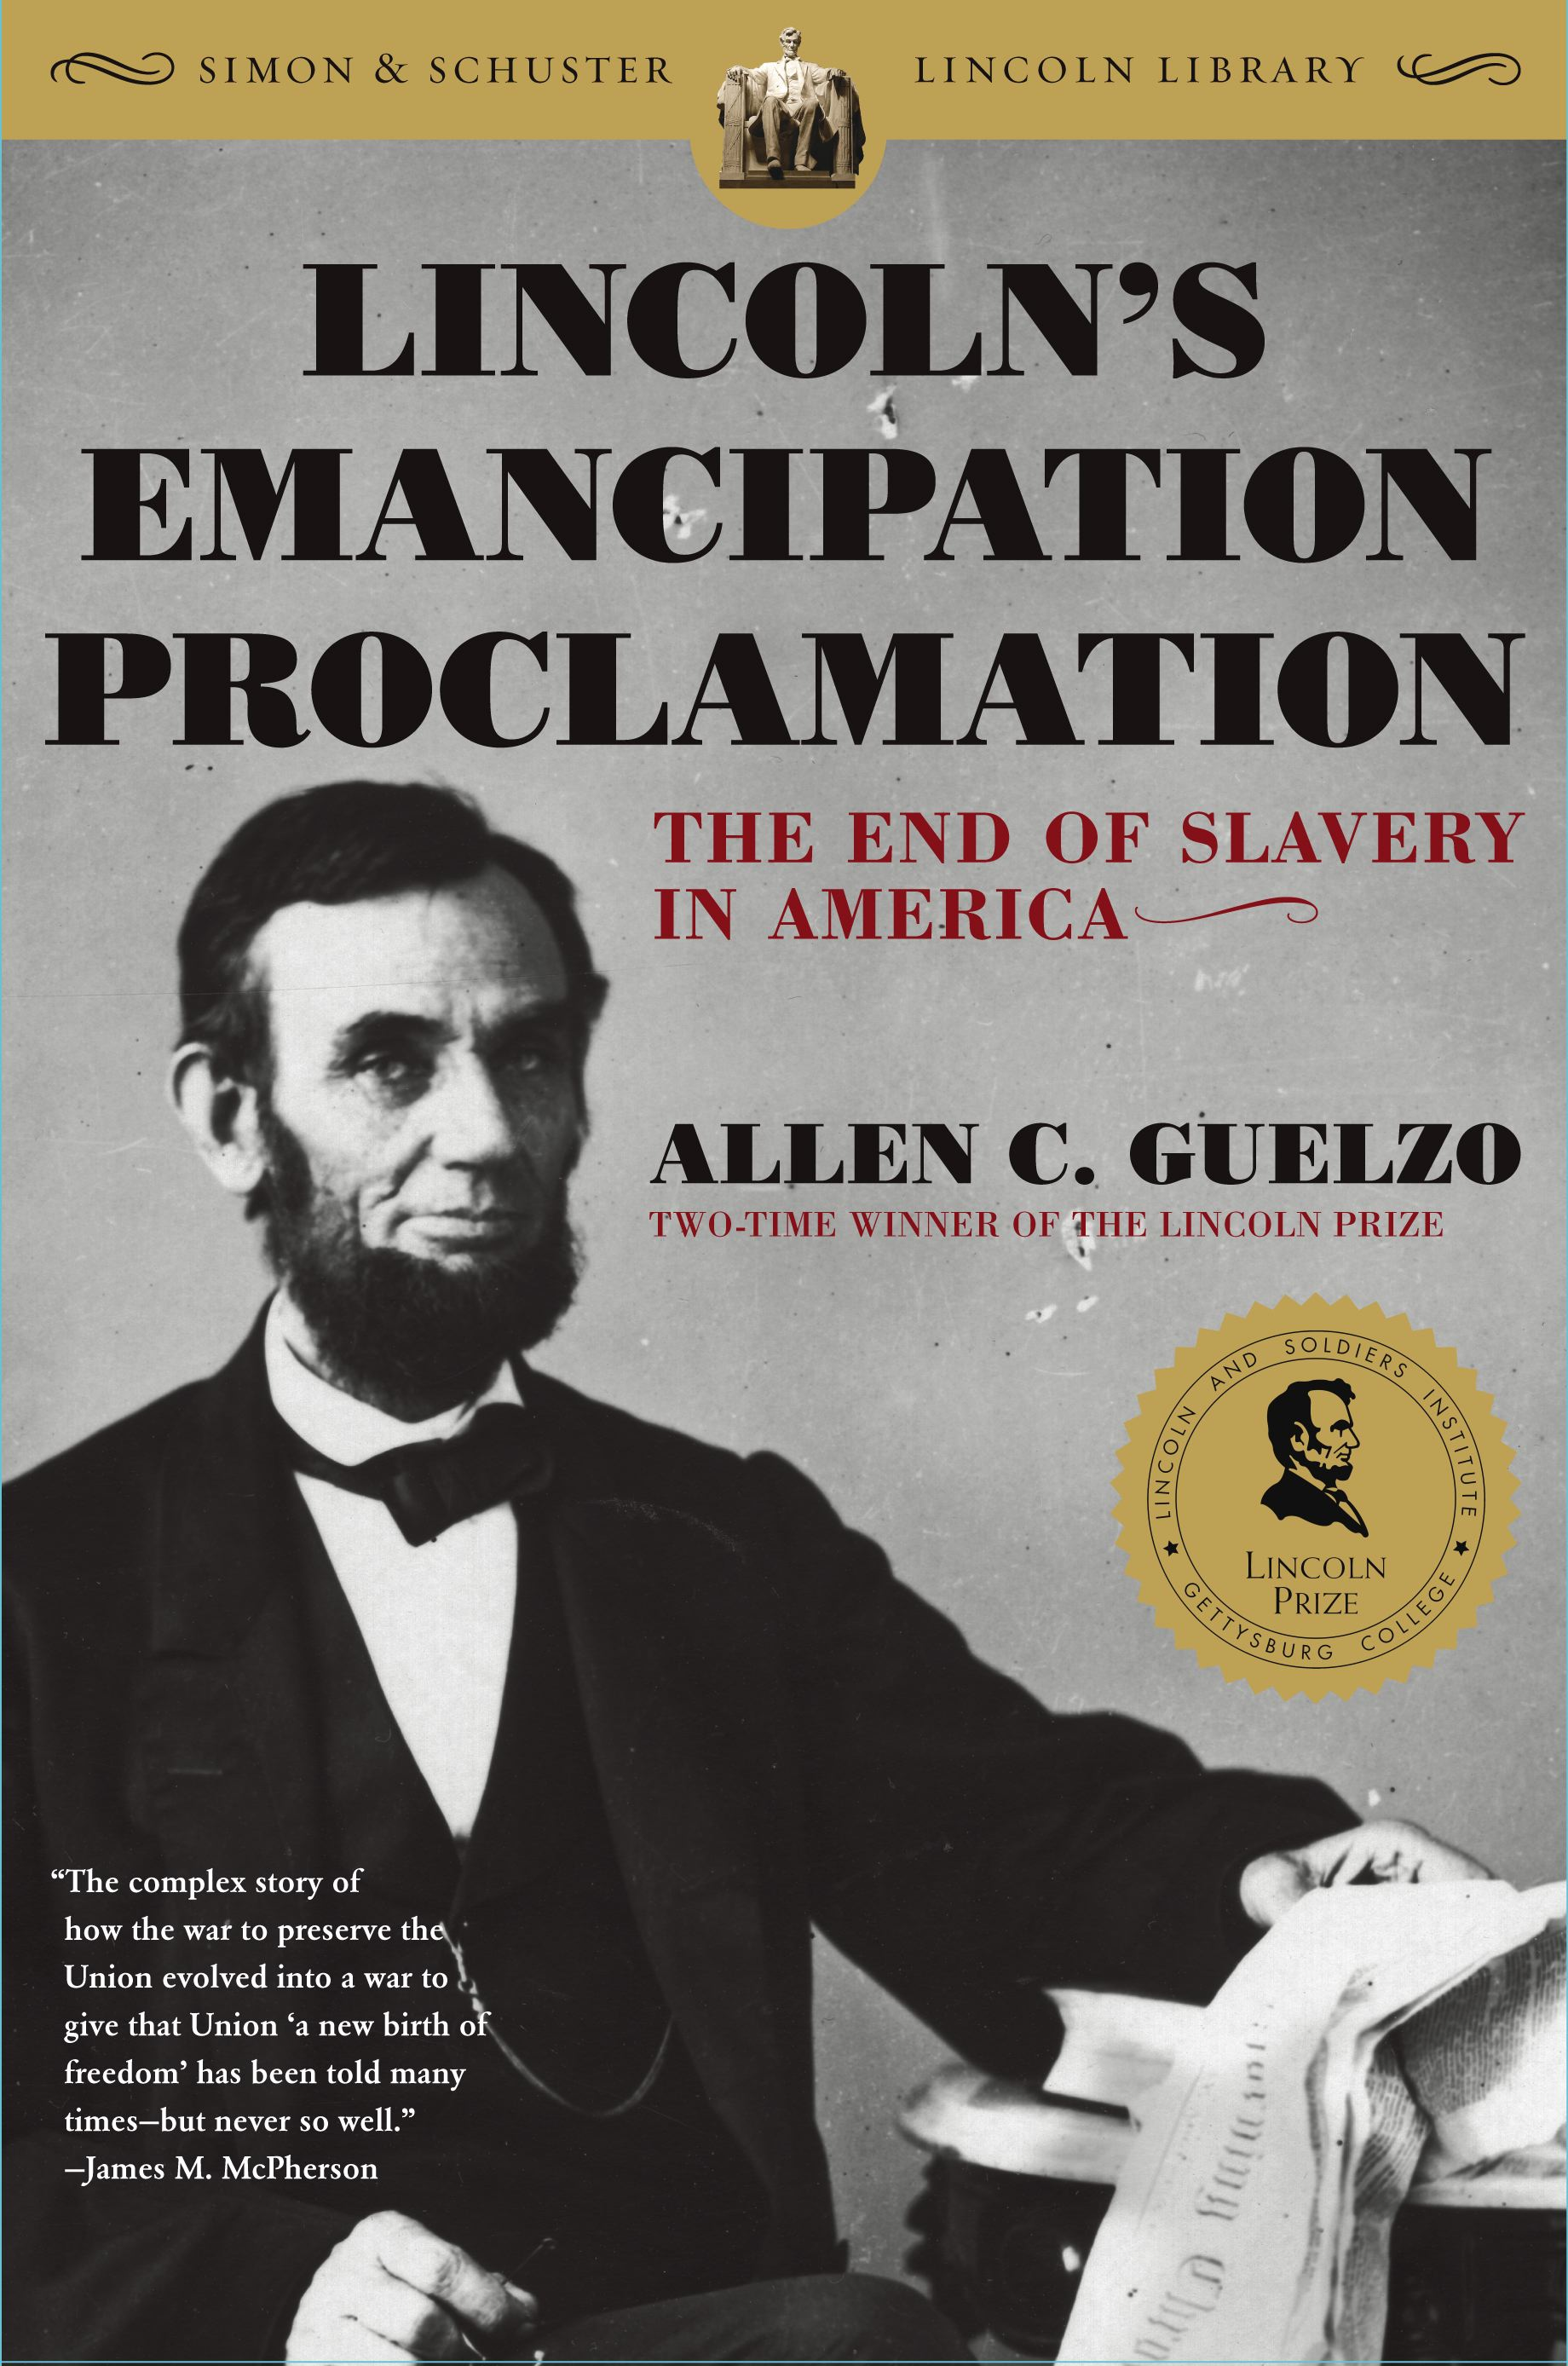 I have to write an essay on the Emancipation Proclamation?